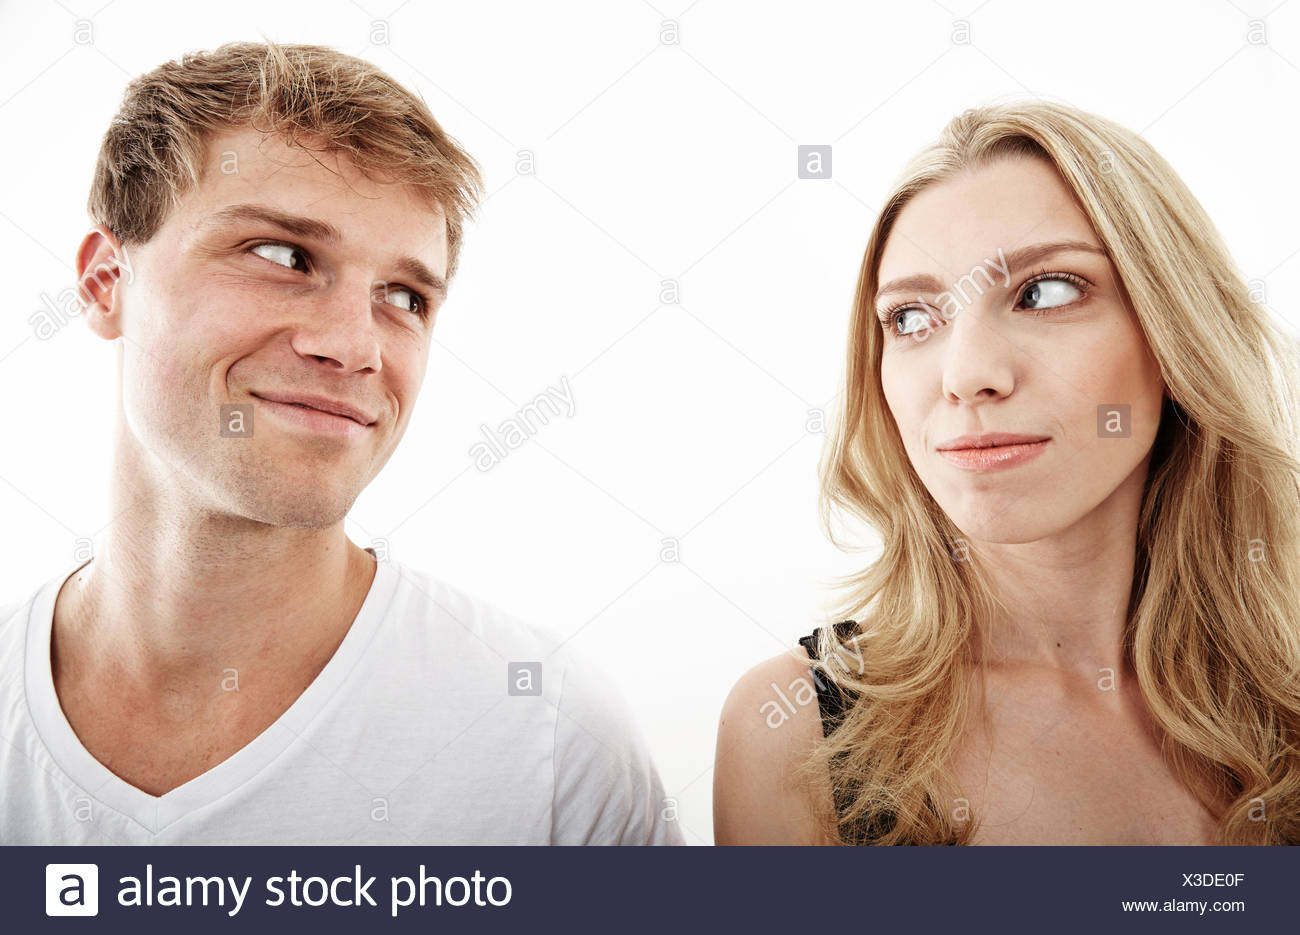 Studio portrait of young couple looking sideways at each other - Stock Image